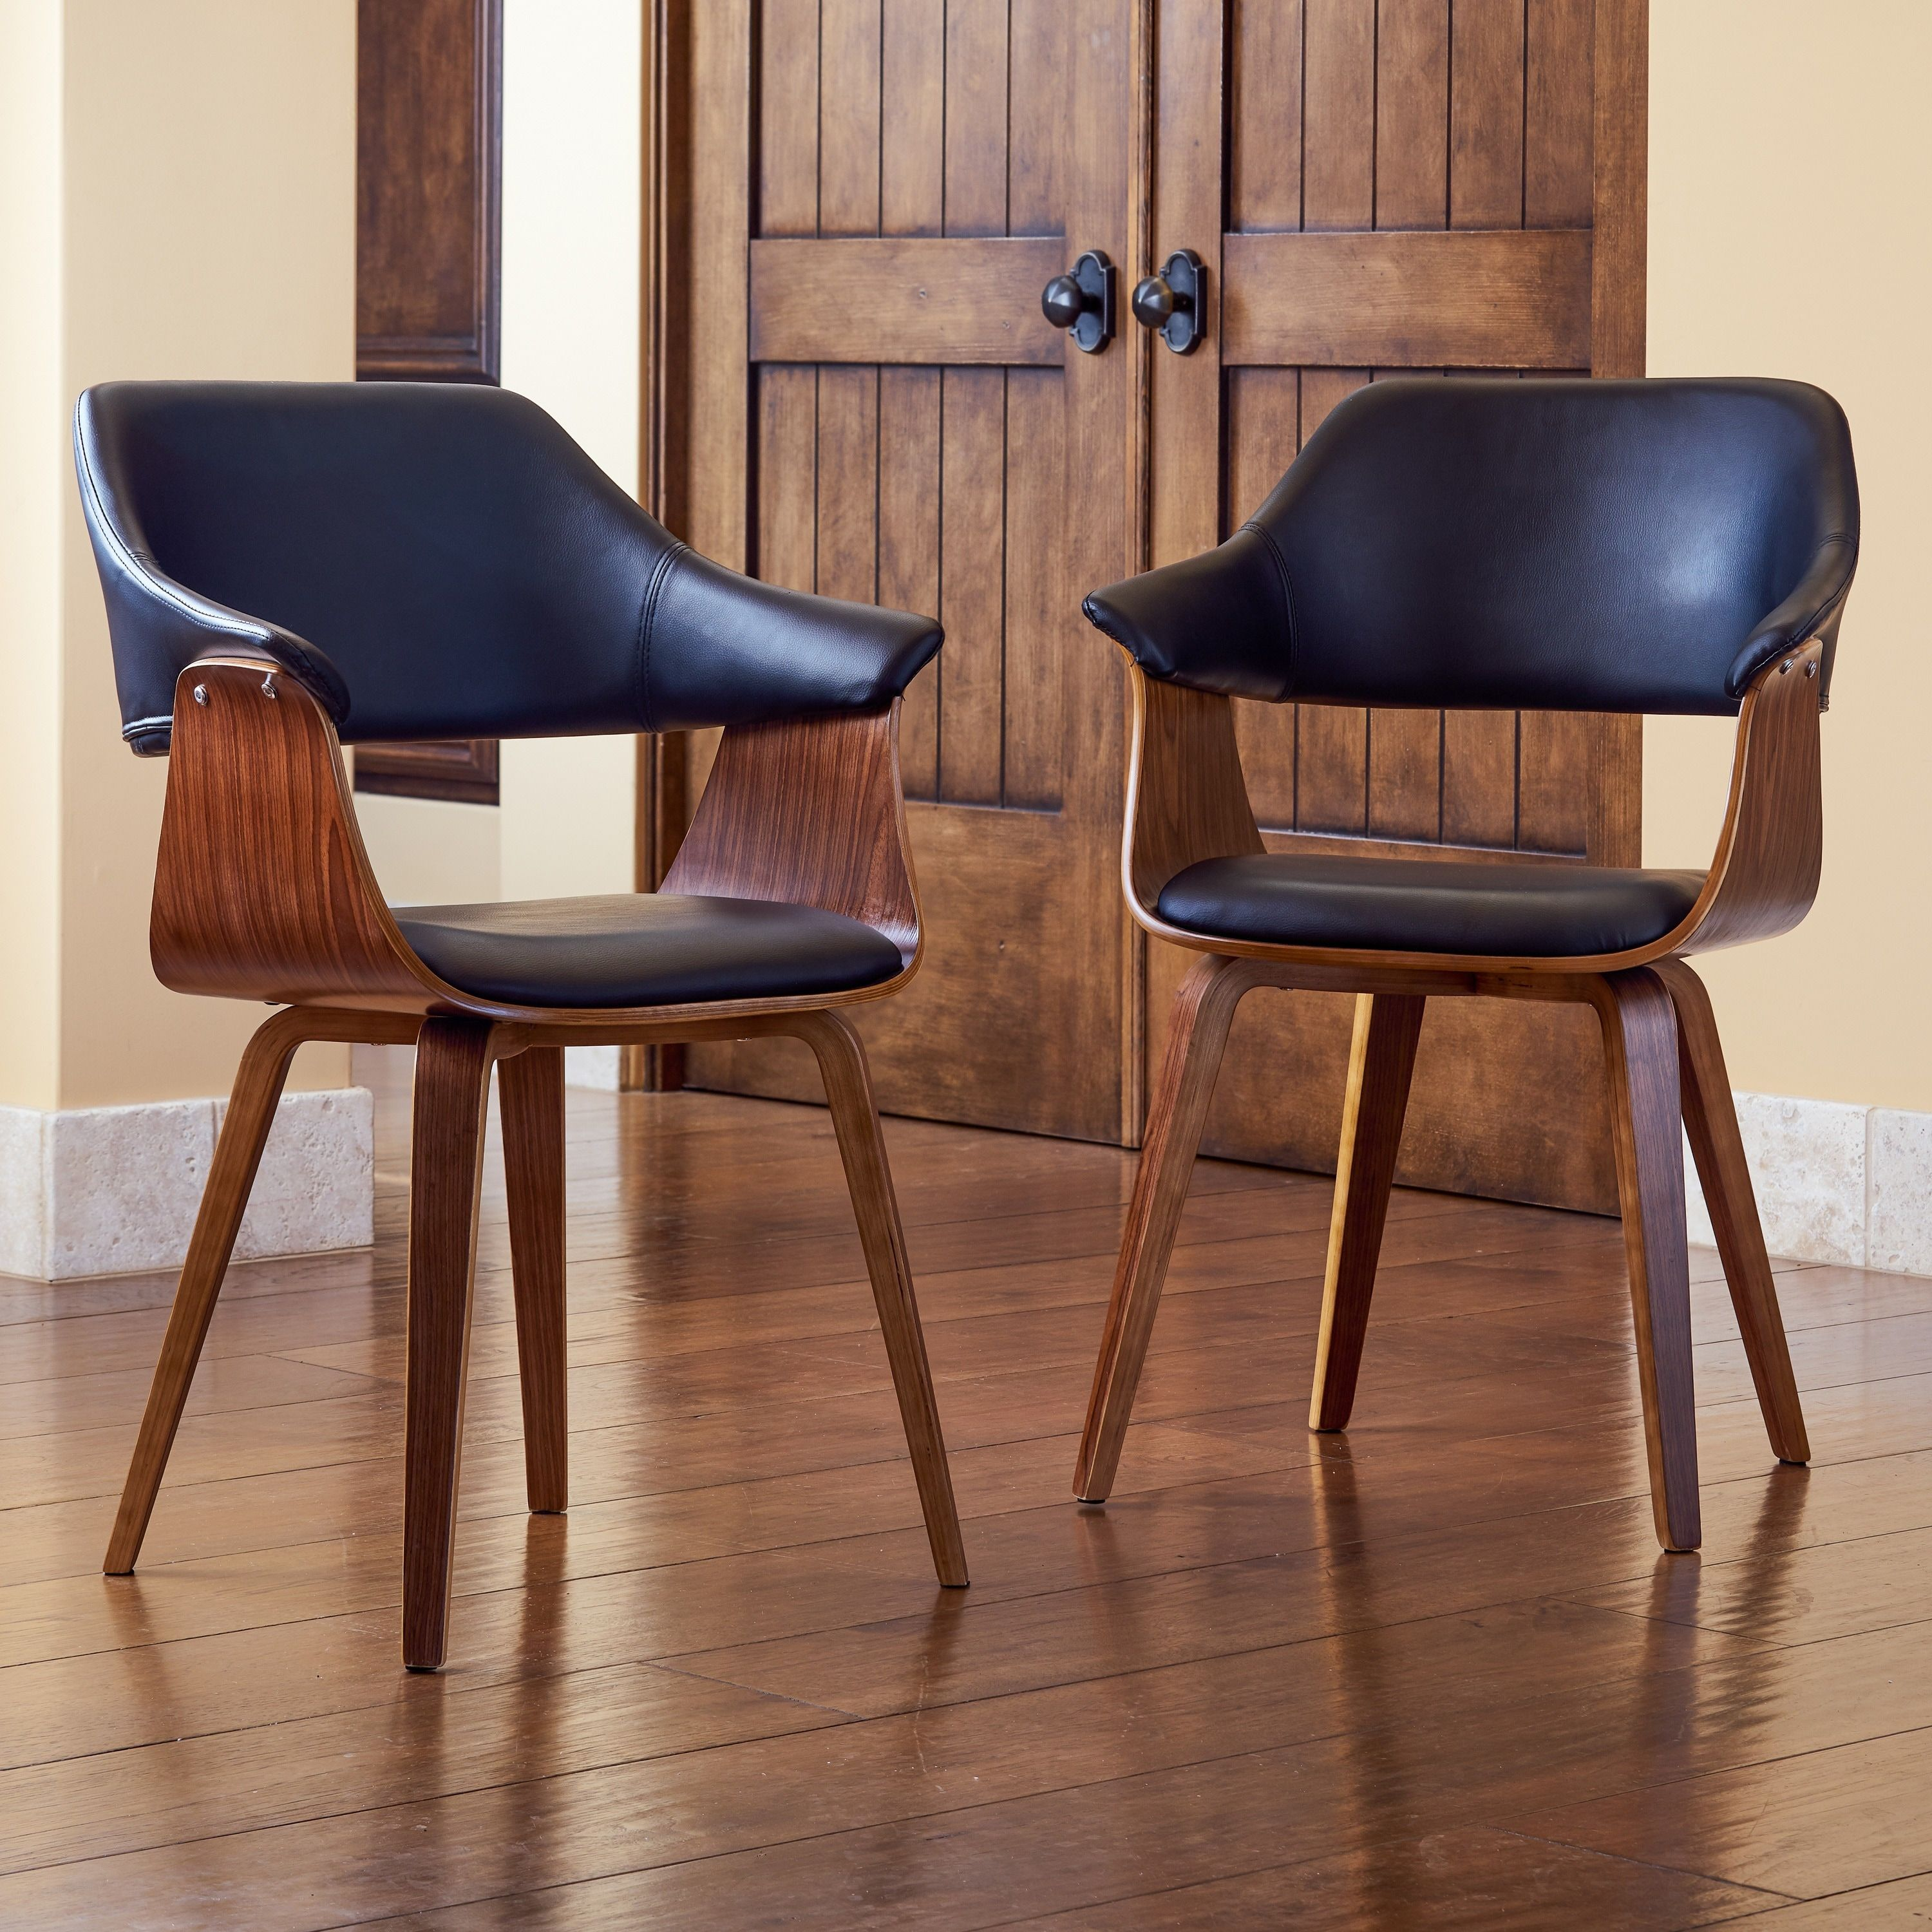 Best Corvus Norah Mid Century Modern Accent Chairs With Wood 640 x 480